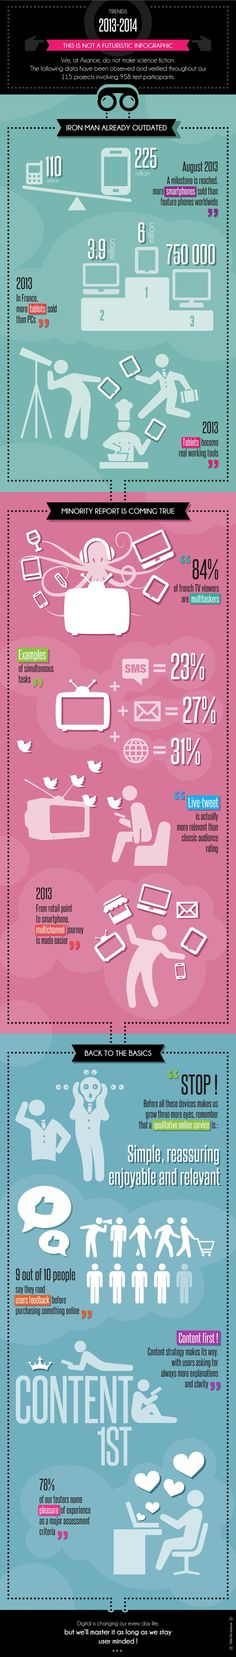 2013 - 2014 Digital Trends    #infographic #DigitalTrends #Internet #Smartphone #technology